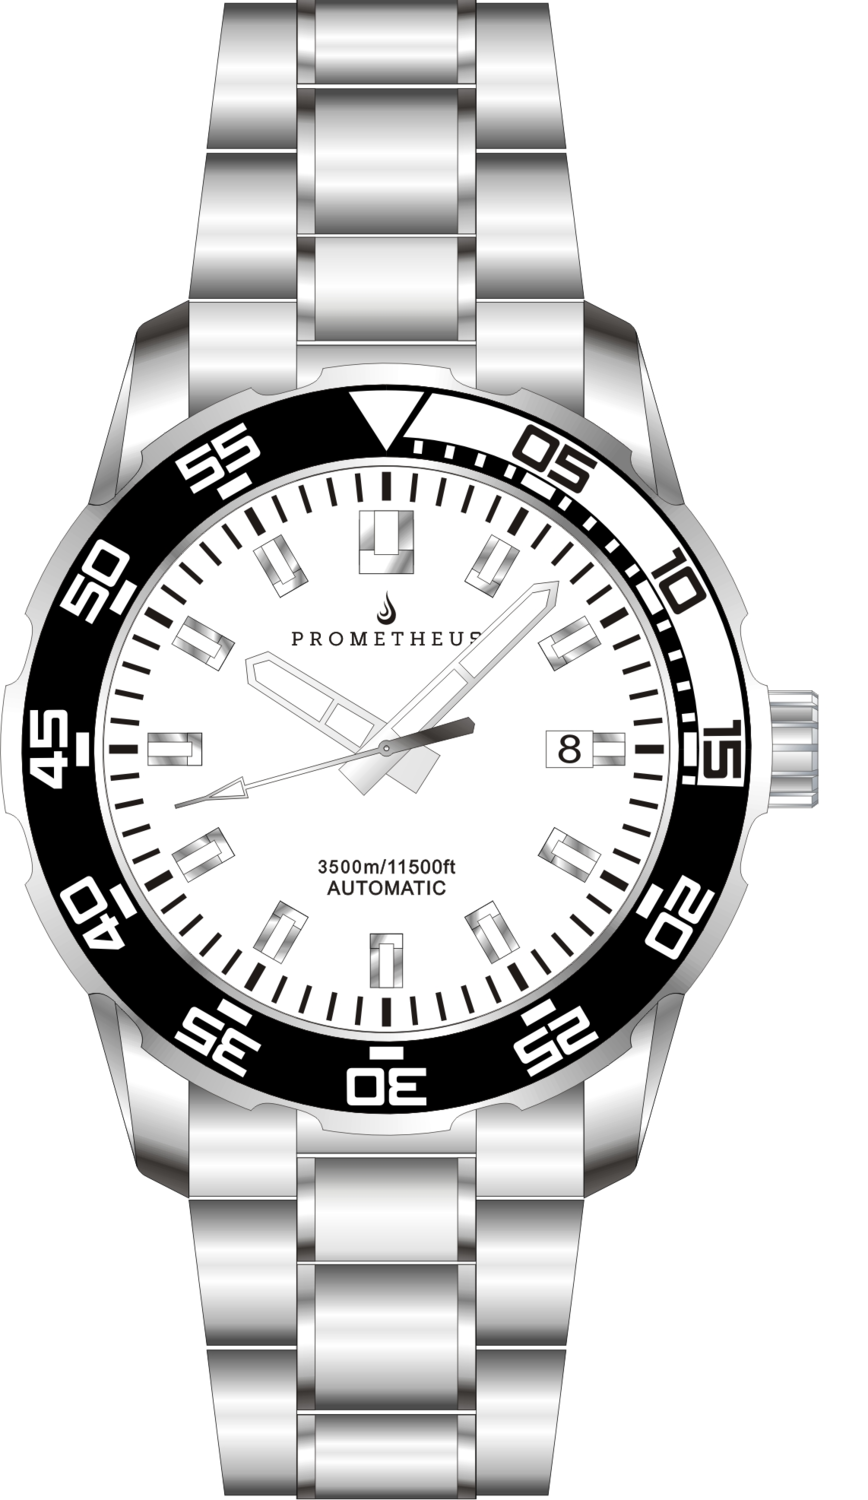 Prometheus Poseidon Stainless Steel White Bezel Lumed White Dial Pencil Hands 3500m Miyota 9015 Automatic Diver Watch